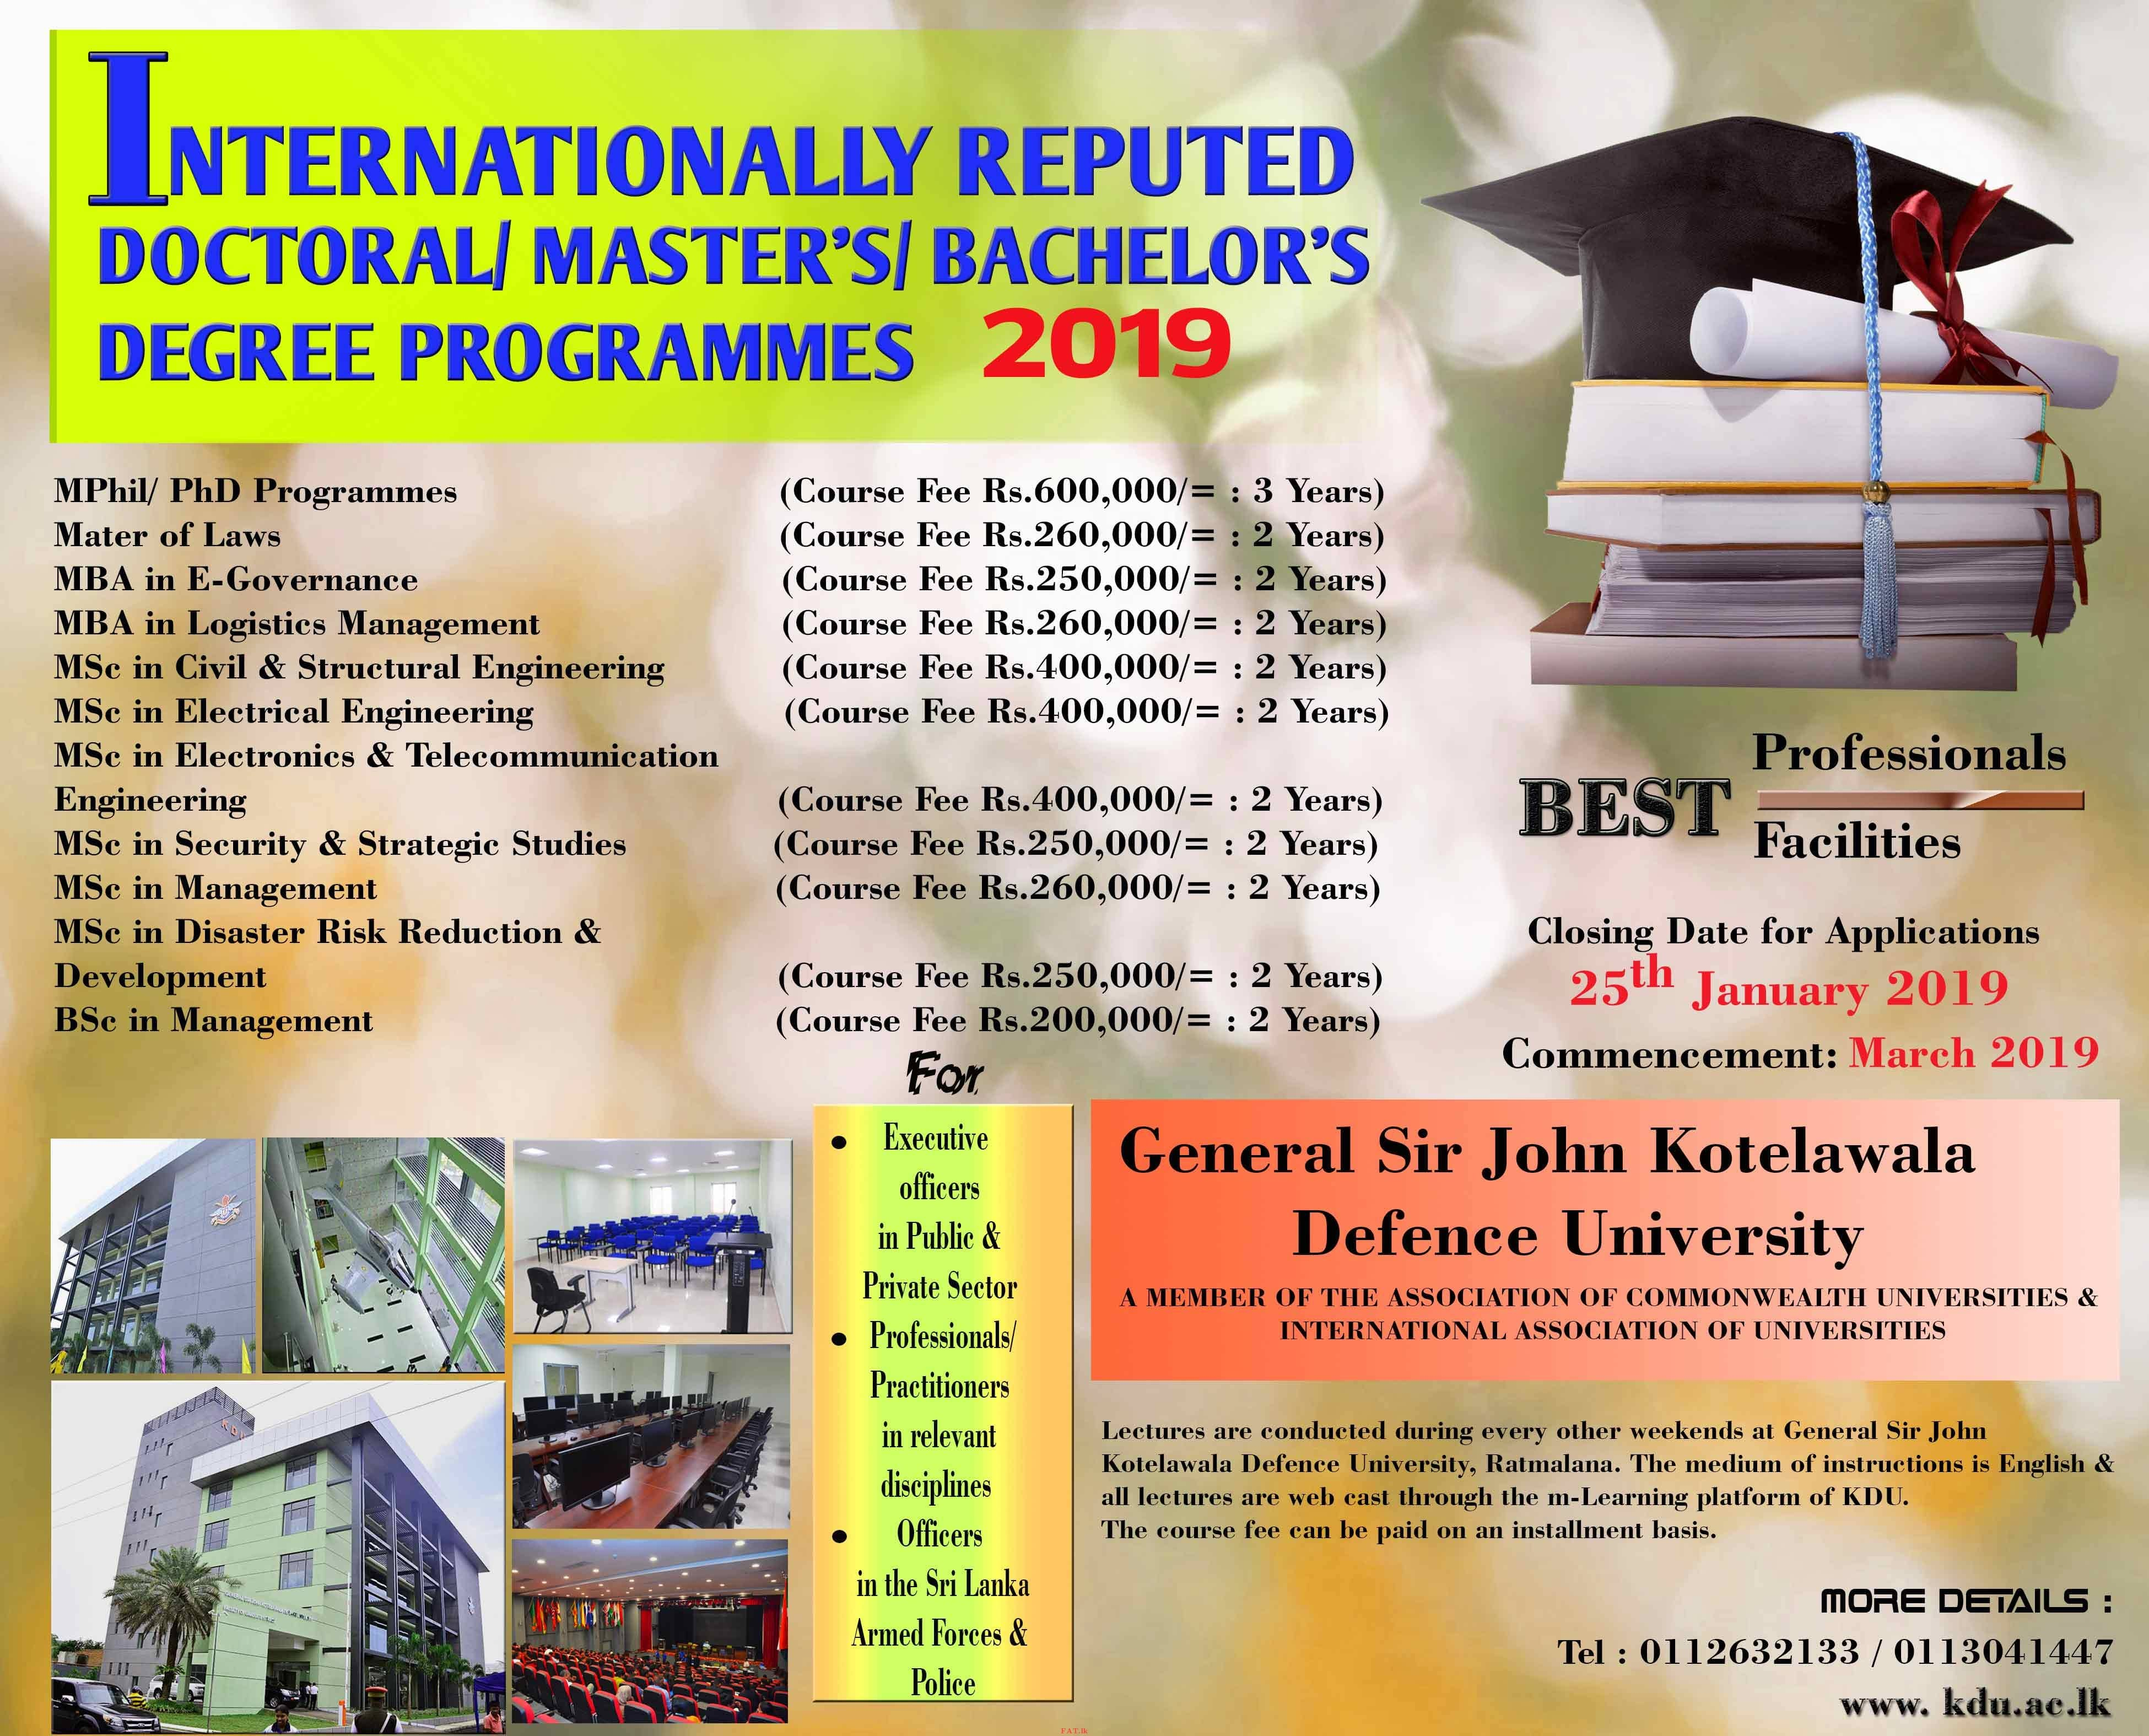 Full Time Degree programmes offered by KDU - 2018/2019